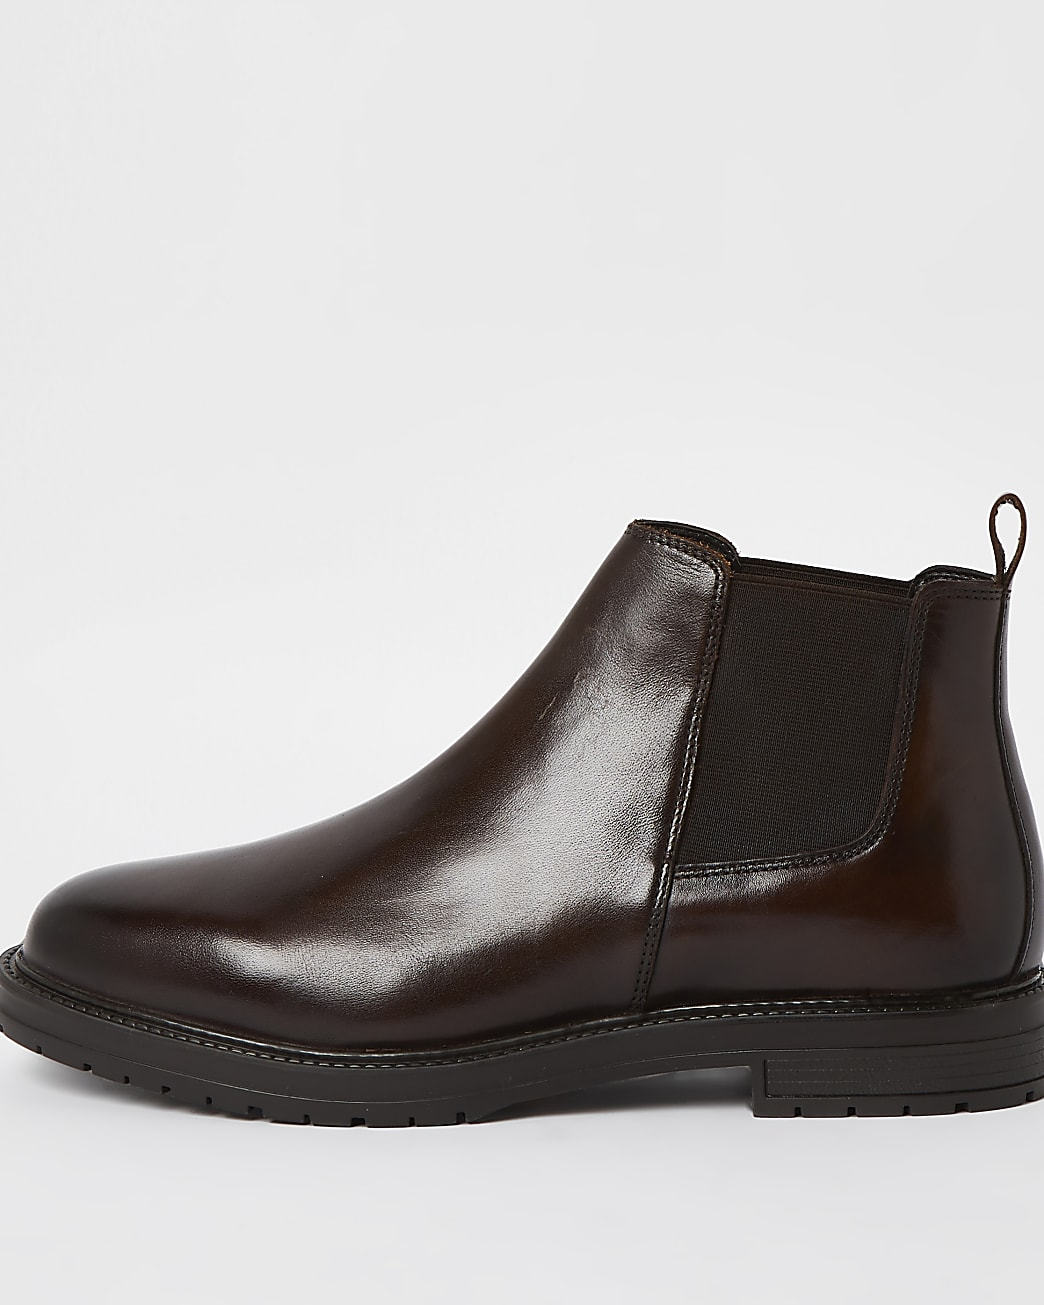 Brown low Chelsea ankle boots